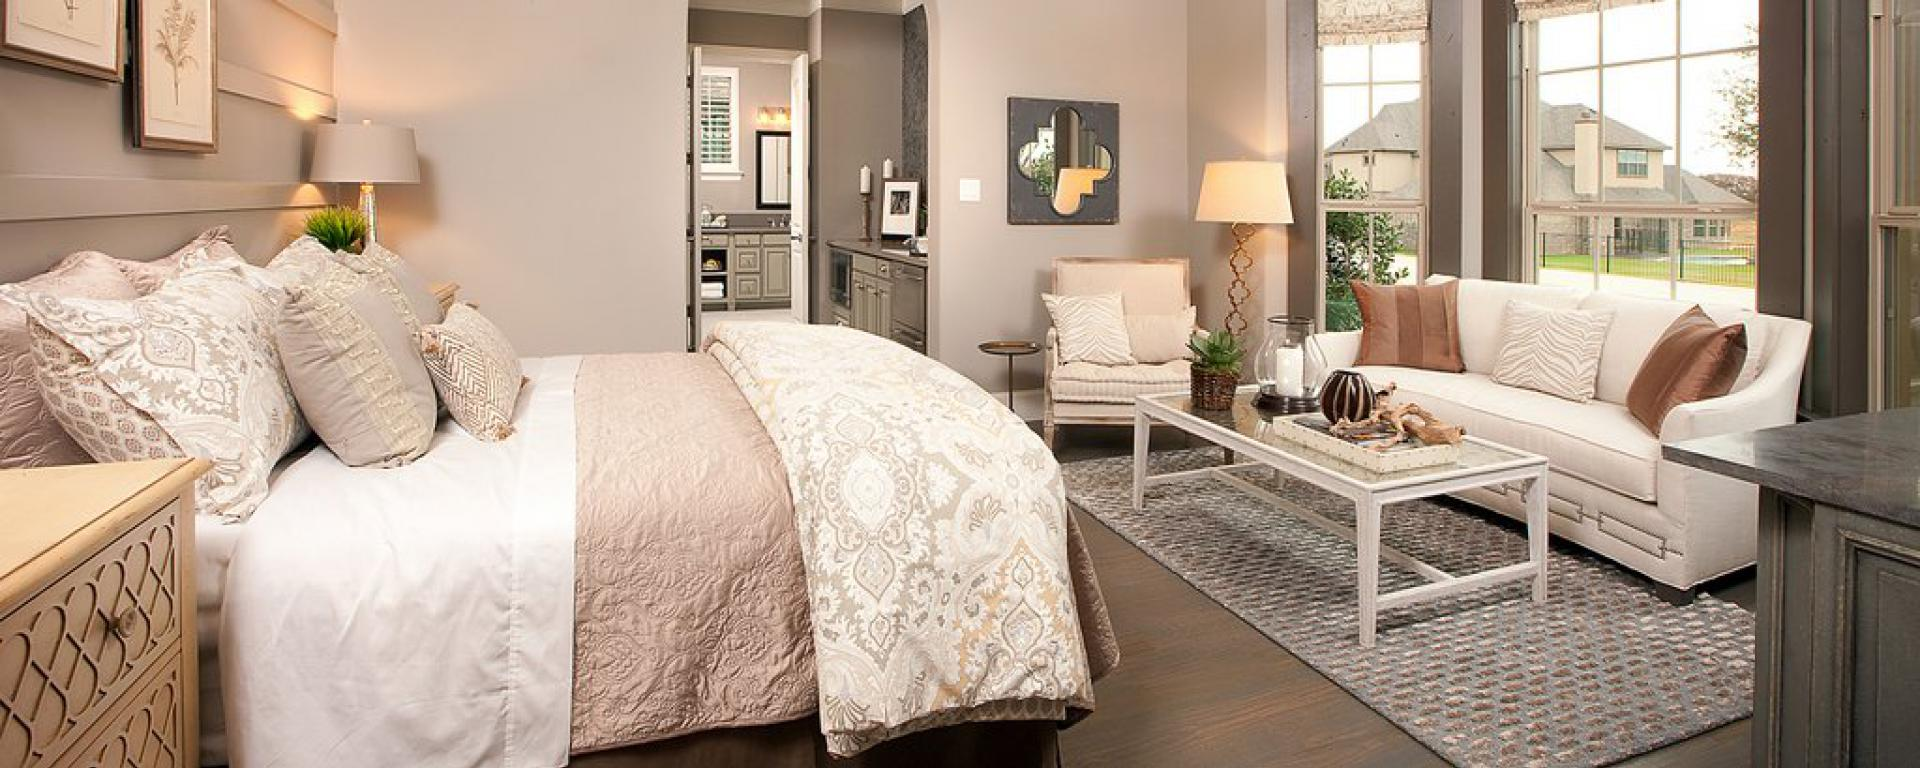 parc mont new home plan for canterbury hills community in dallas